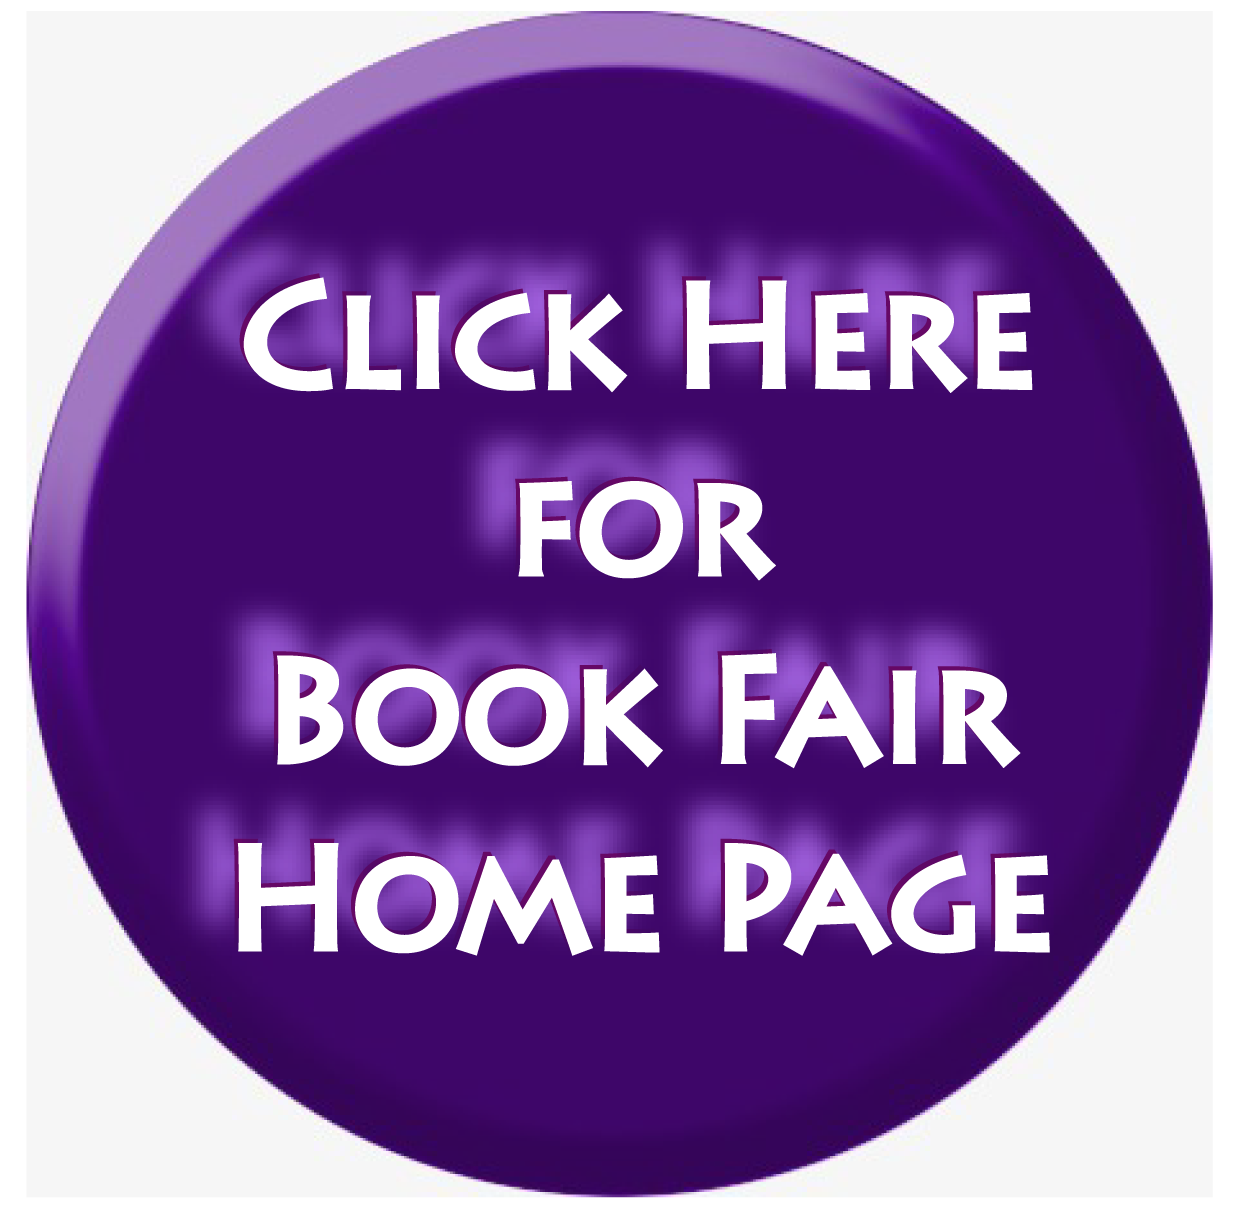 Click Here for Book Fair Home Page